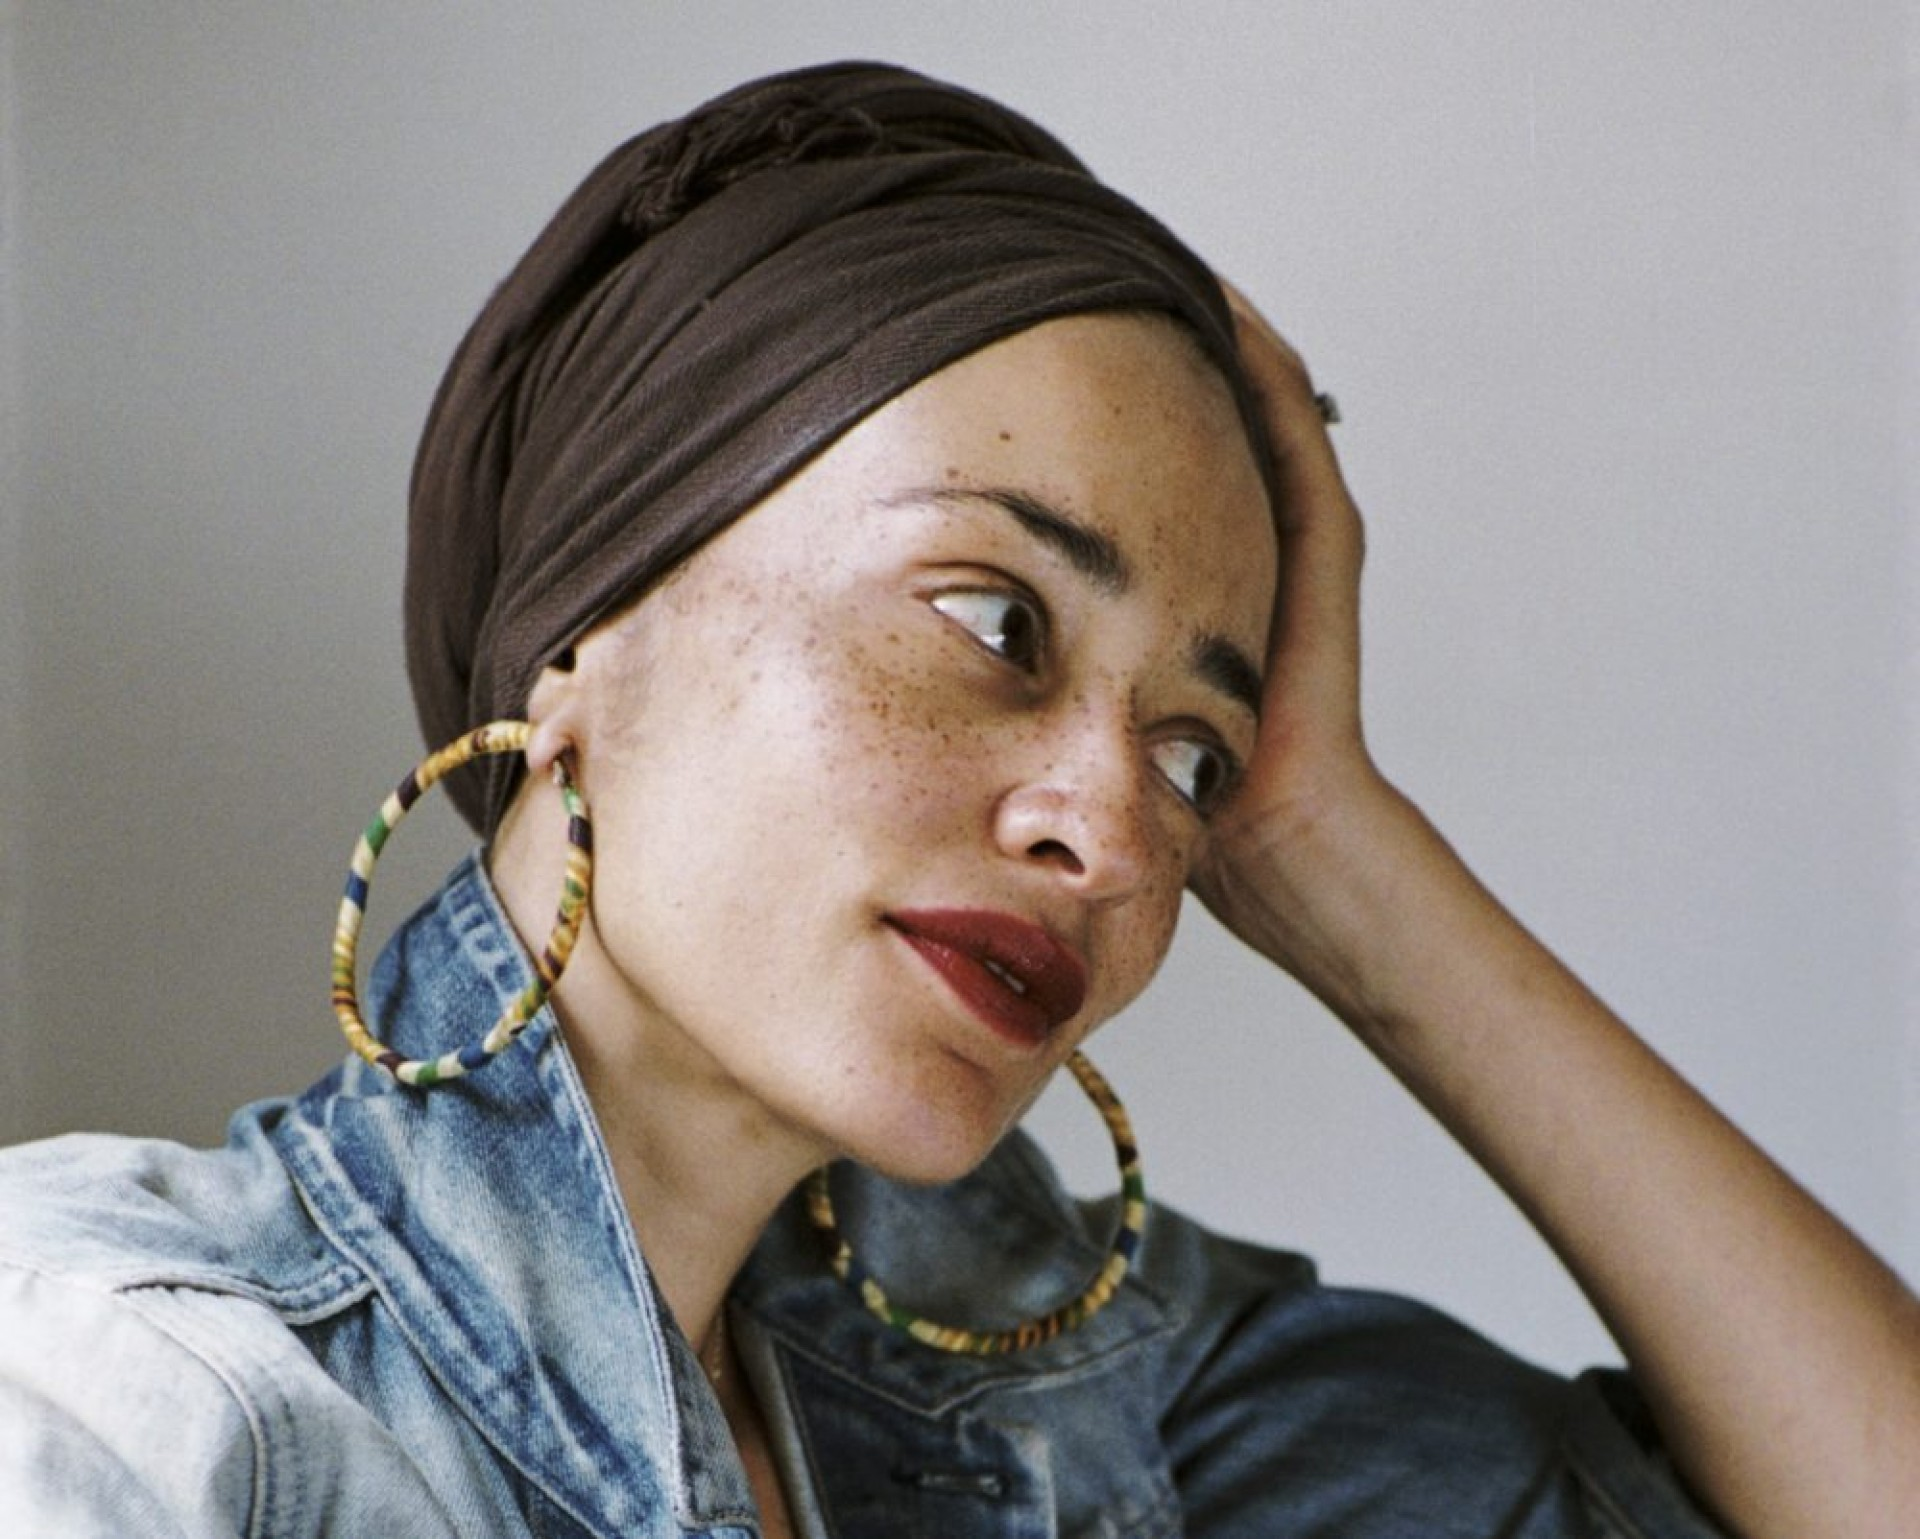 006 Zadie Smith Dominique Nabokov 1000x802 Essays Essay Wonderful Amazon Radio 4 1920